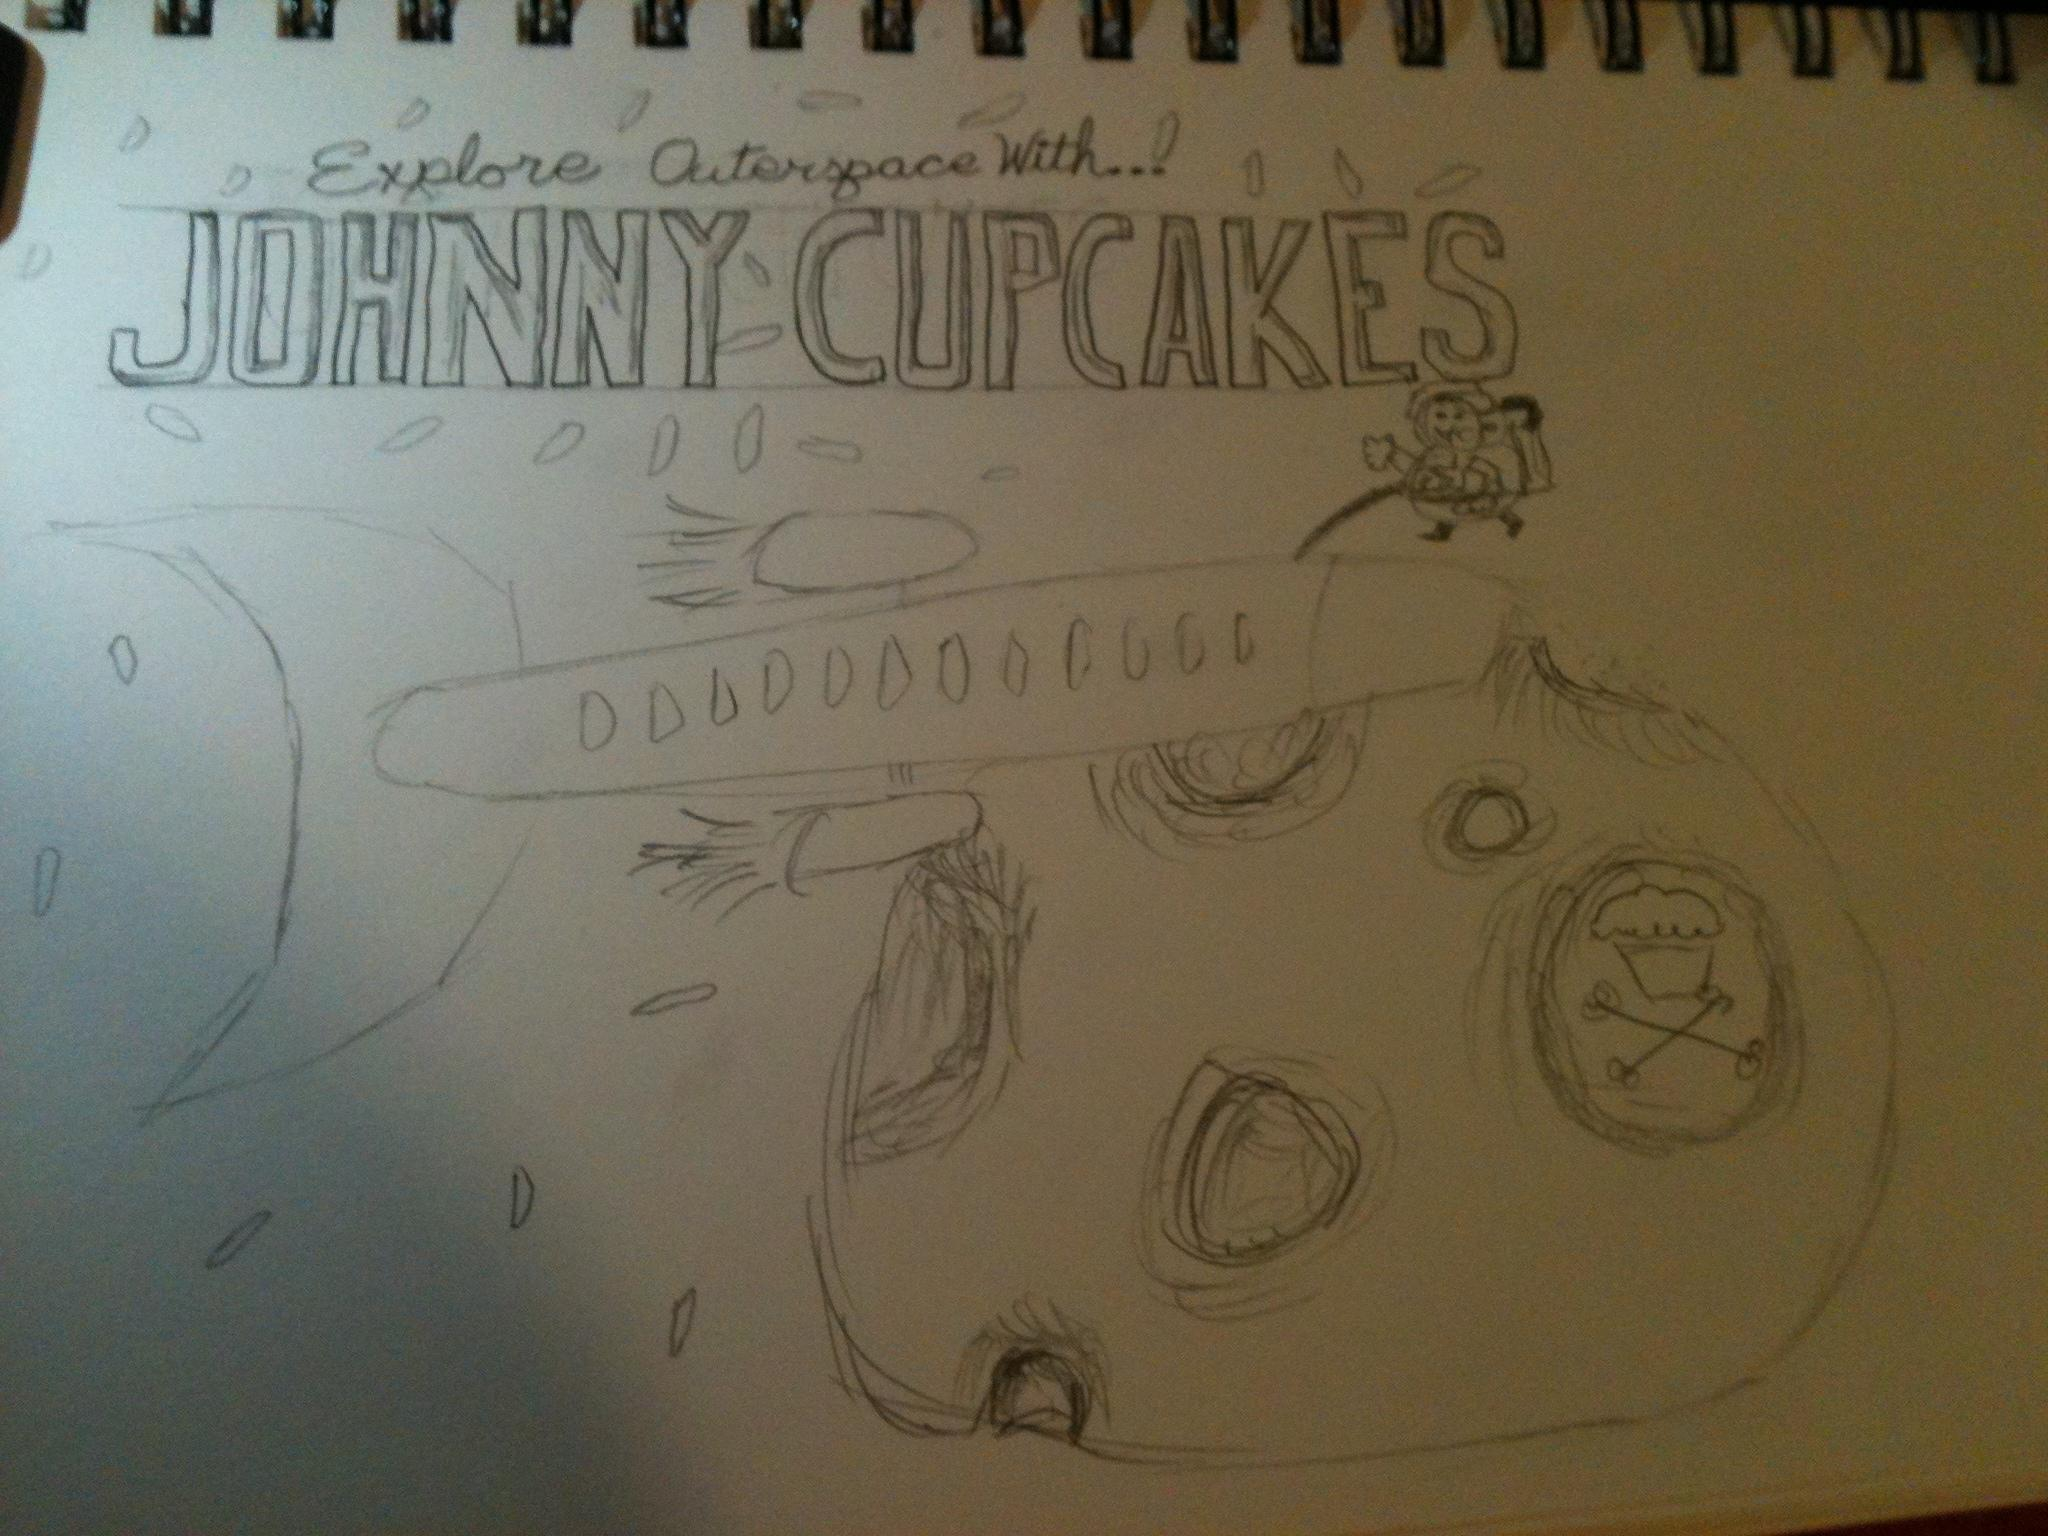 Johnny Cupcakes - Outerspace - image 1 - student project